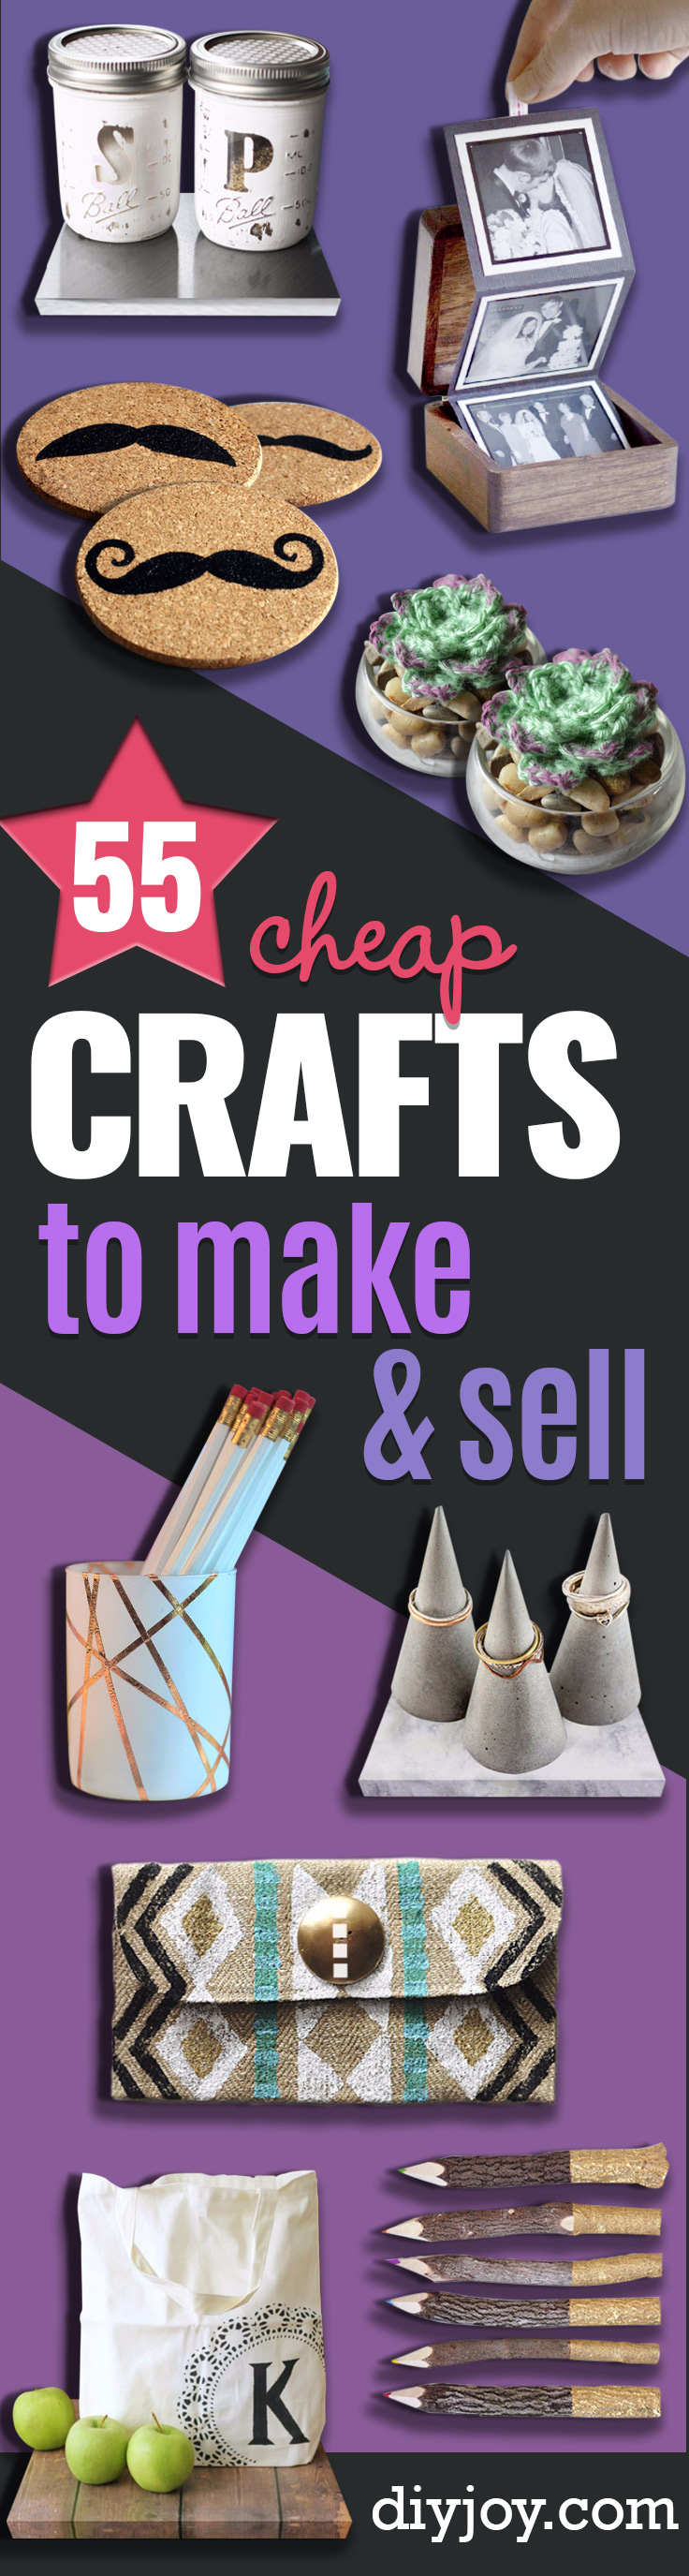 Cheap Crafts To Make and Sell - Inexpensive Ideas for DIY Crafts To Sell On Etsy - DIY Ideas to Sell and Make Money - Top Sellers online and popular best selling gift ideas to sell for profit